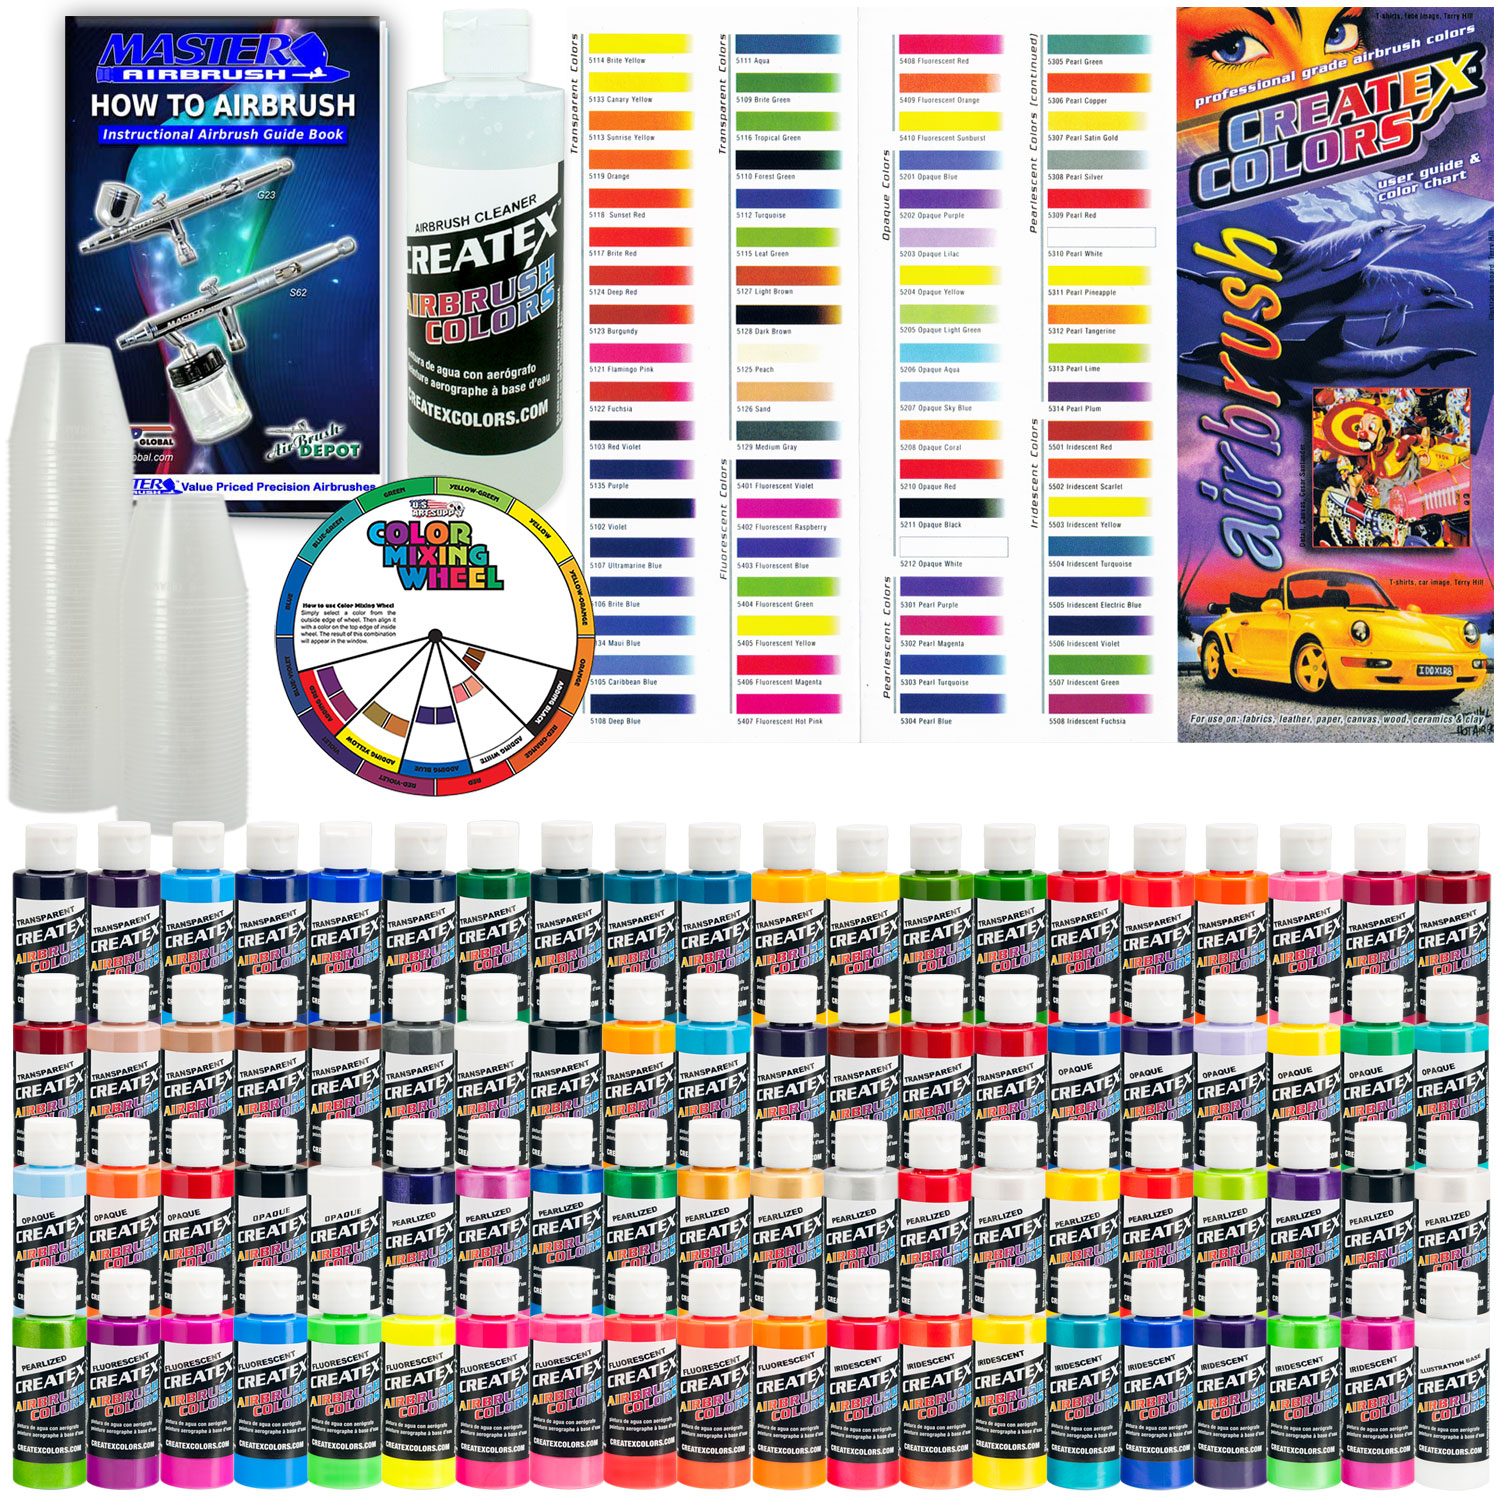 Details about Createx DELUXE ALL 80 COLORS SET 2oz Airbrush Hobby OPAQUE  TRANSPARENT Paint